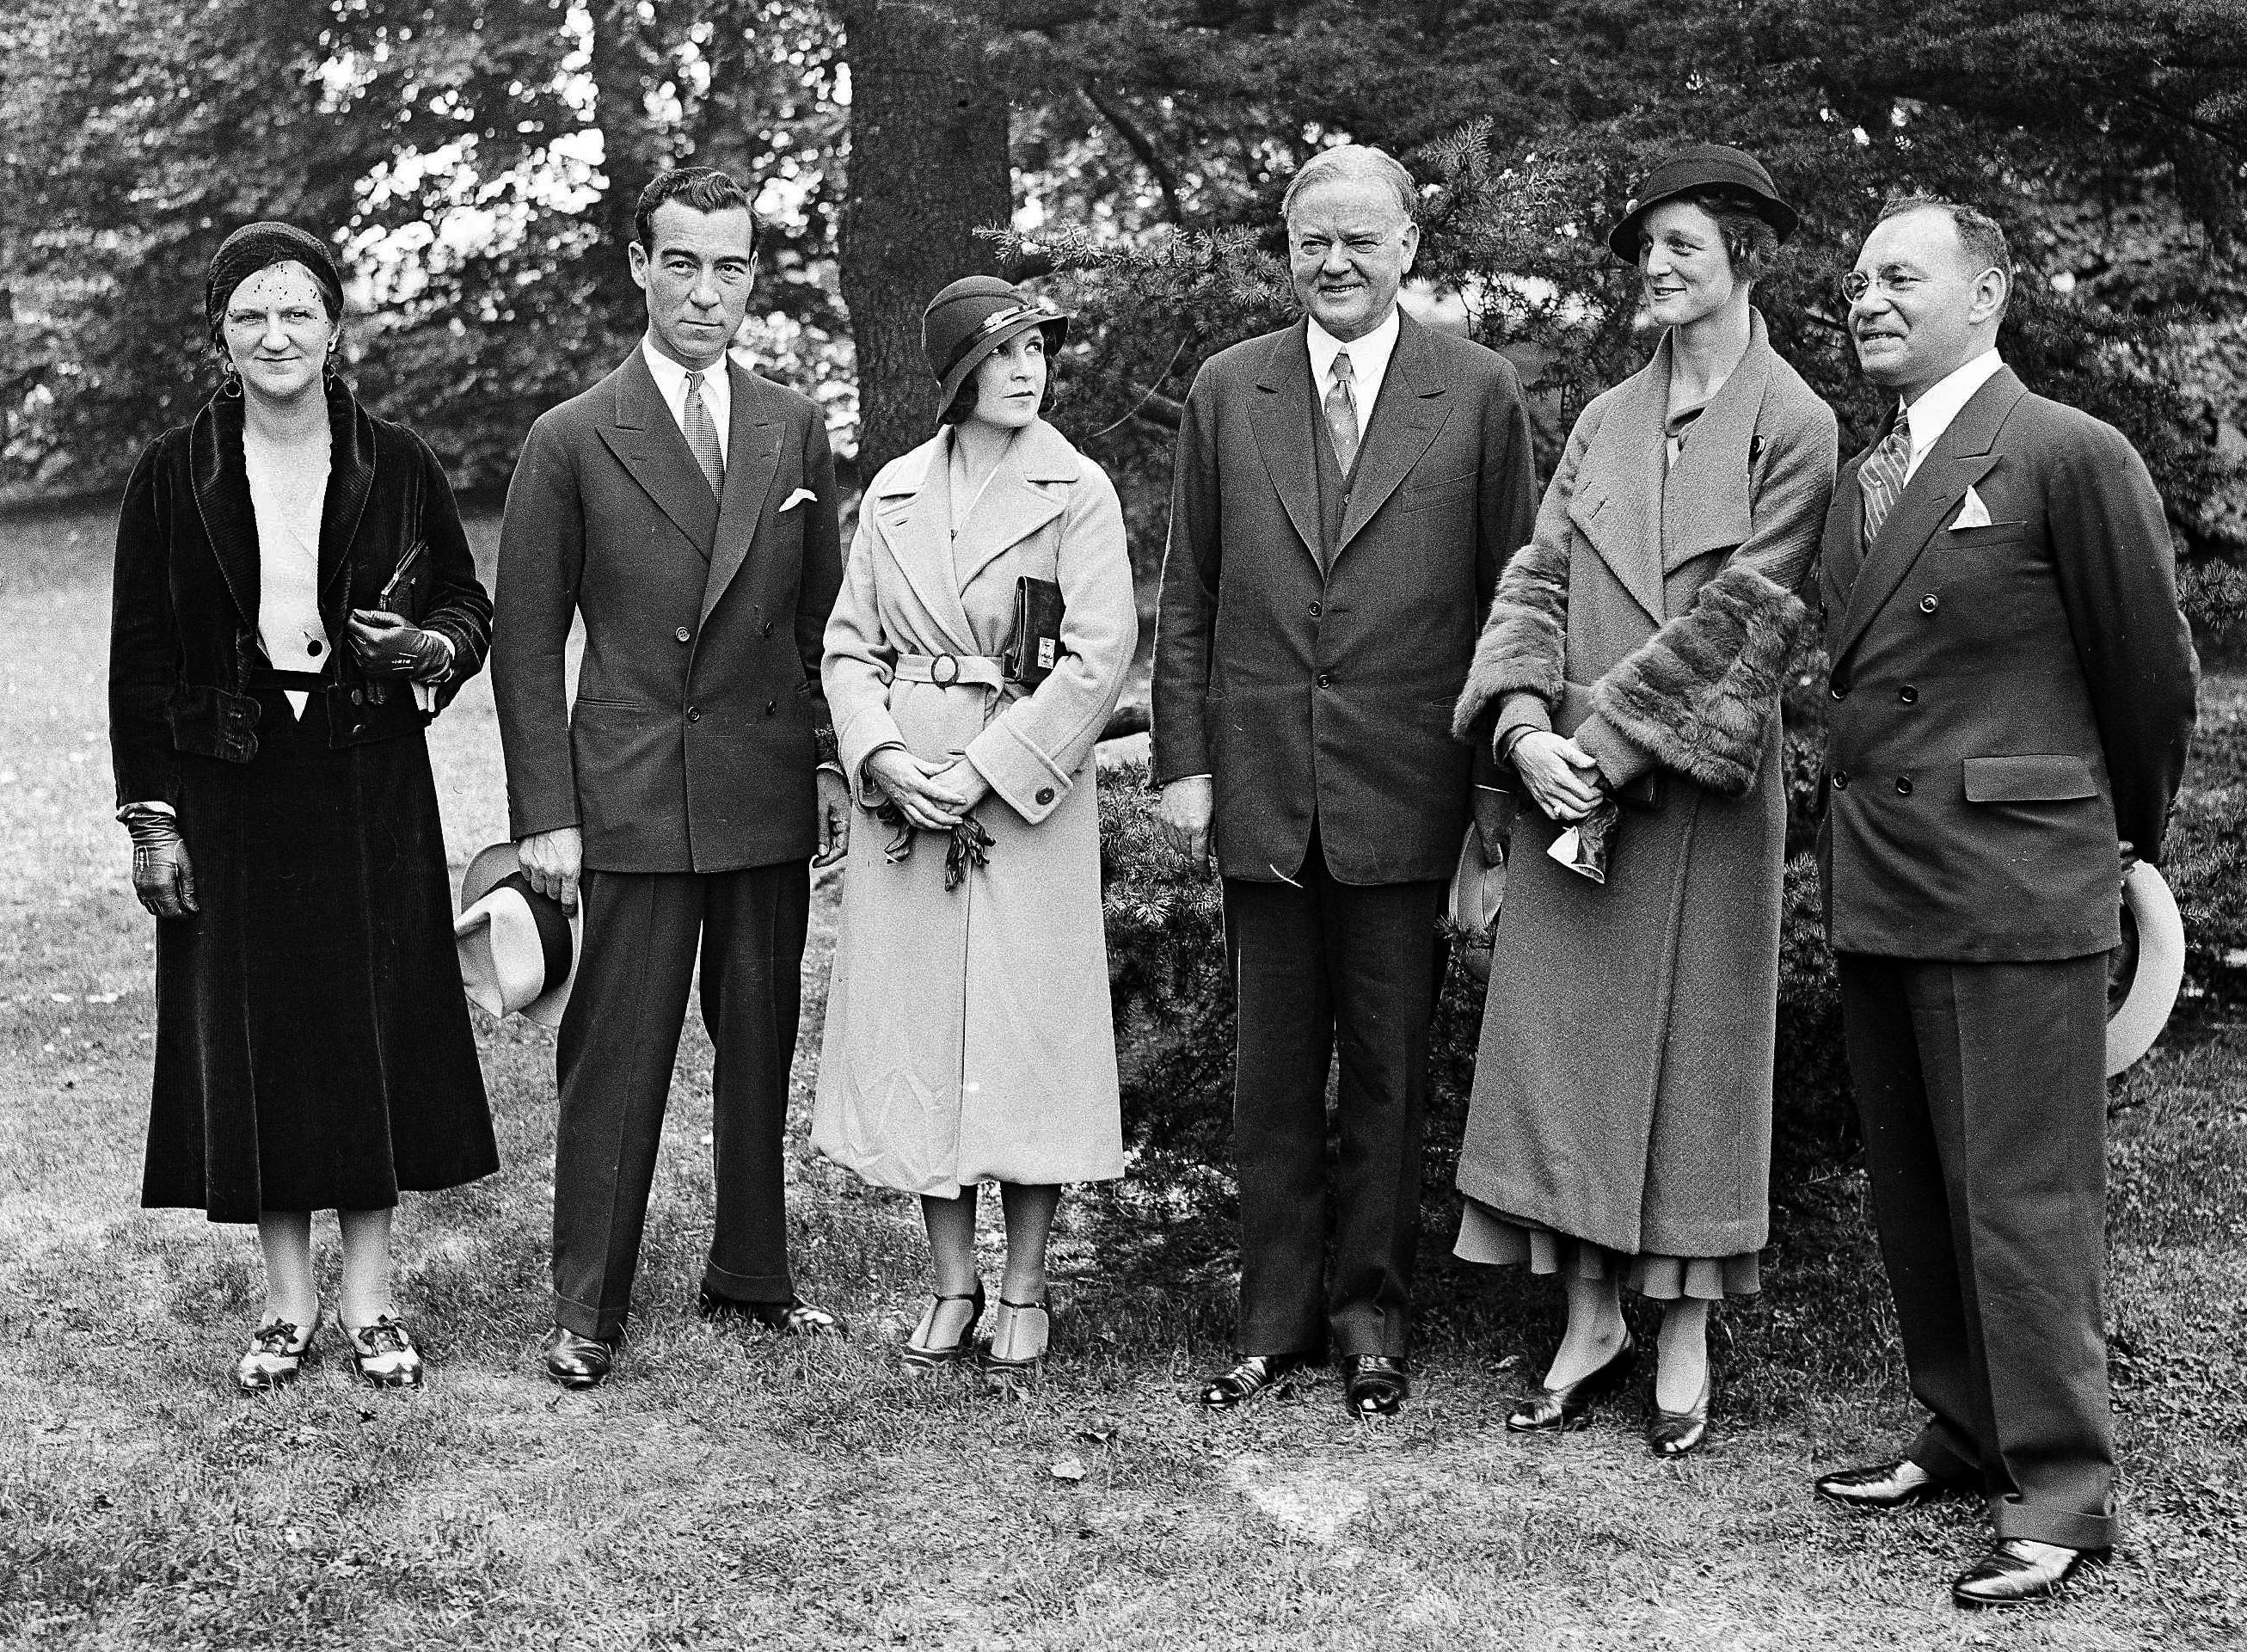 Louise Thaden stands to the left of President Herbert Hoover at the White House on September 22, 1932. Frances Marsalis, to the president's right, was her partner in setting the women's endurance flying record. Other in the photograph, from the left, are Irene Juno, fficial hostess; Clarence M. Young, assistant secretary of commerce in charge of aeronautics; and I.J. Fox, sponsor of the flight. (AP file photo)